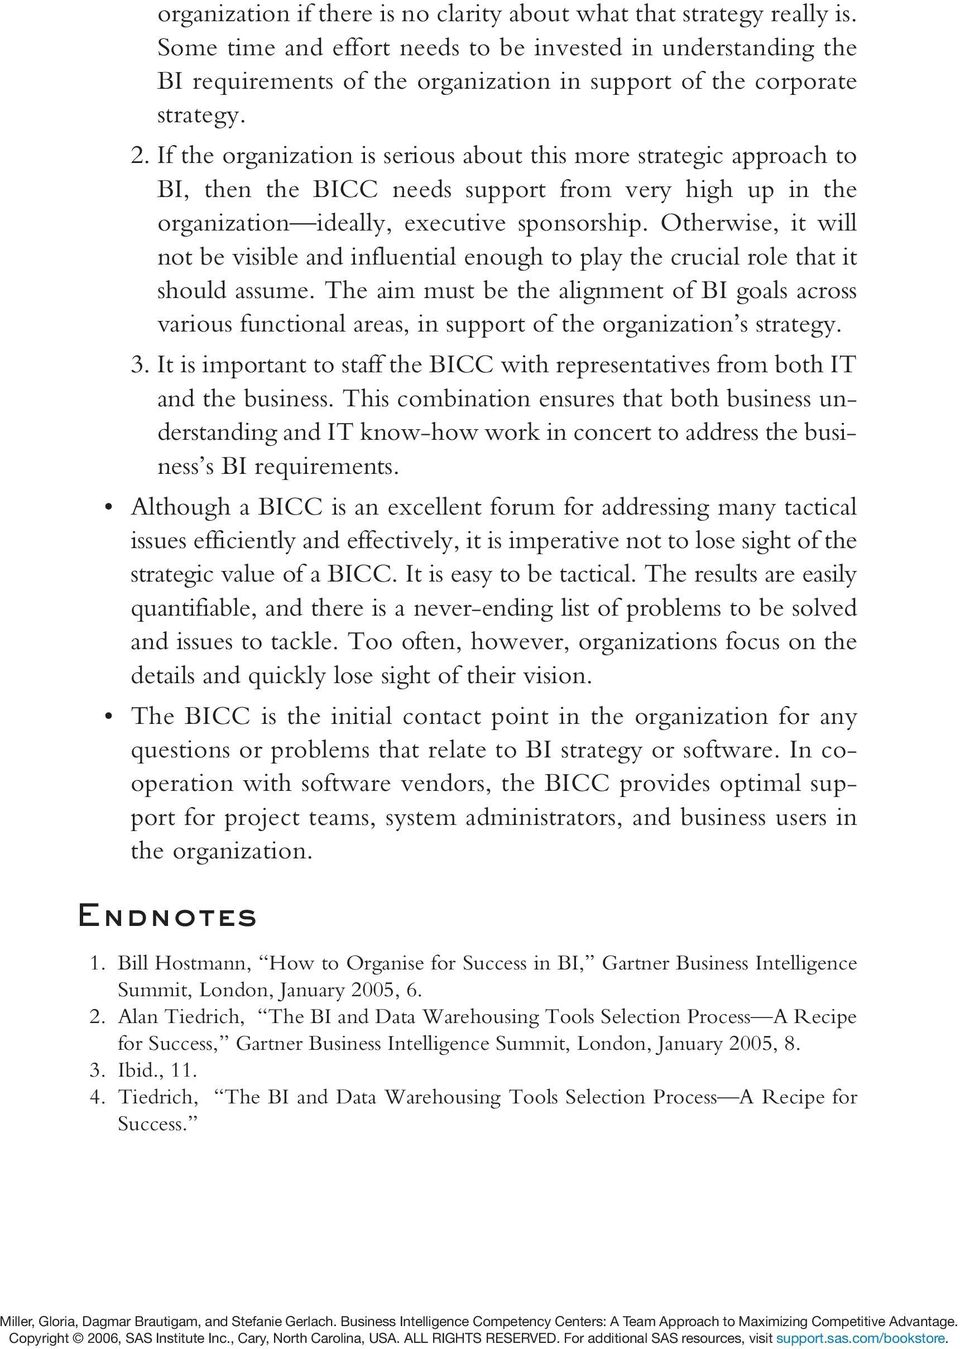 If the organization is serious about this more strategic approach to BI, then the BICC needs support from very high up in the organization ideally, executive sponsorship.